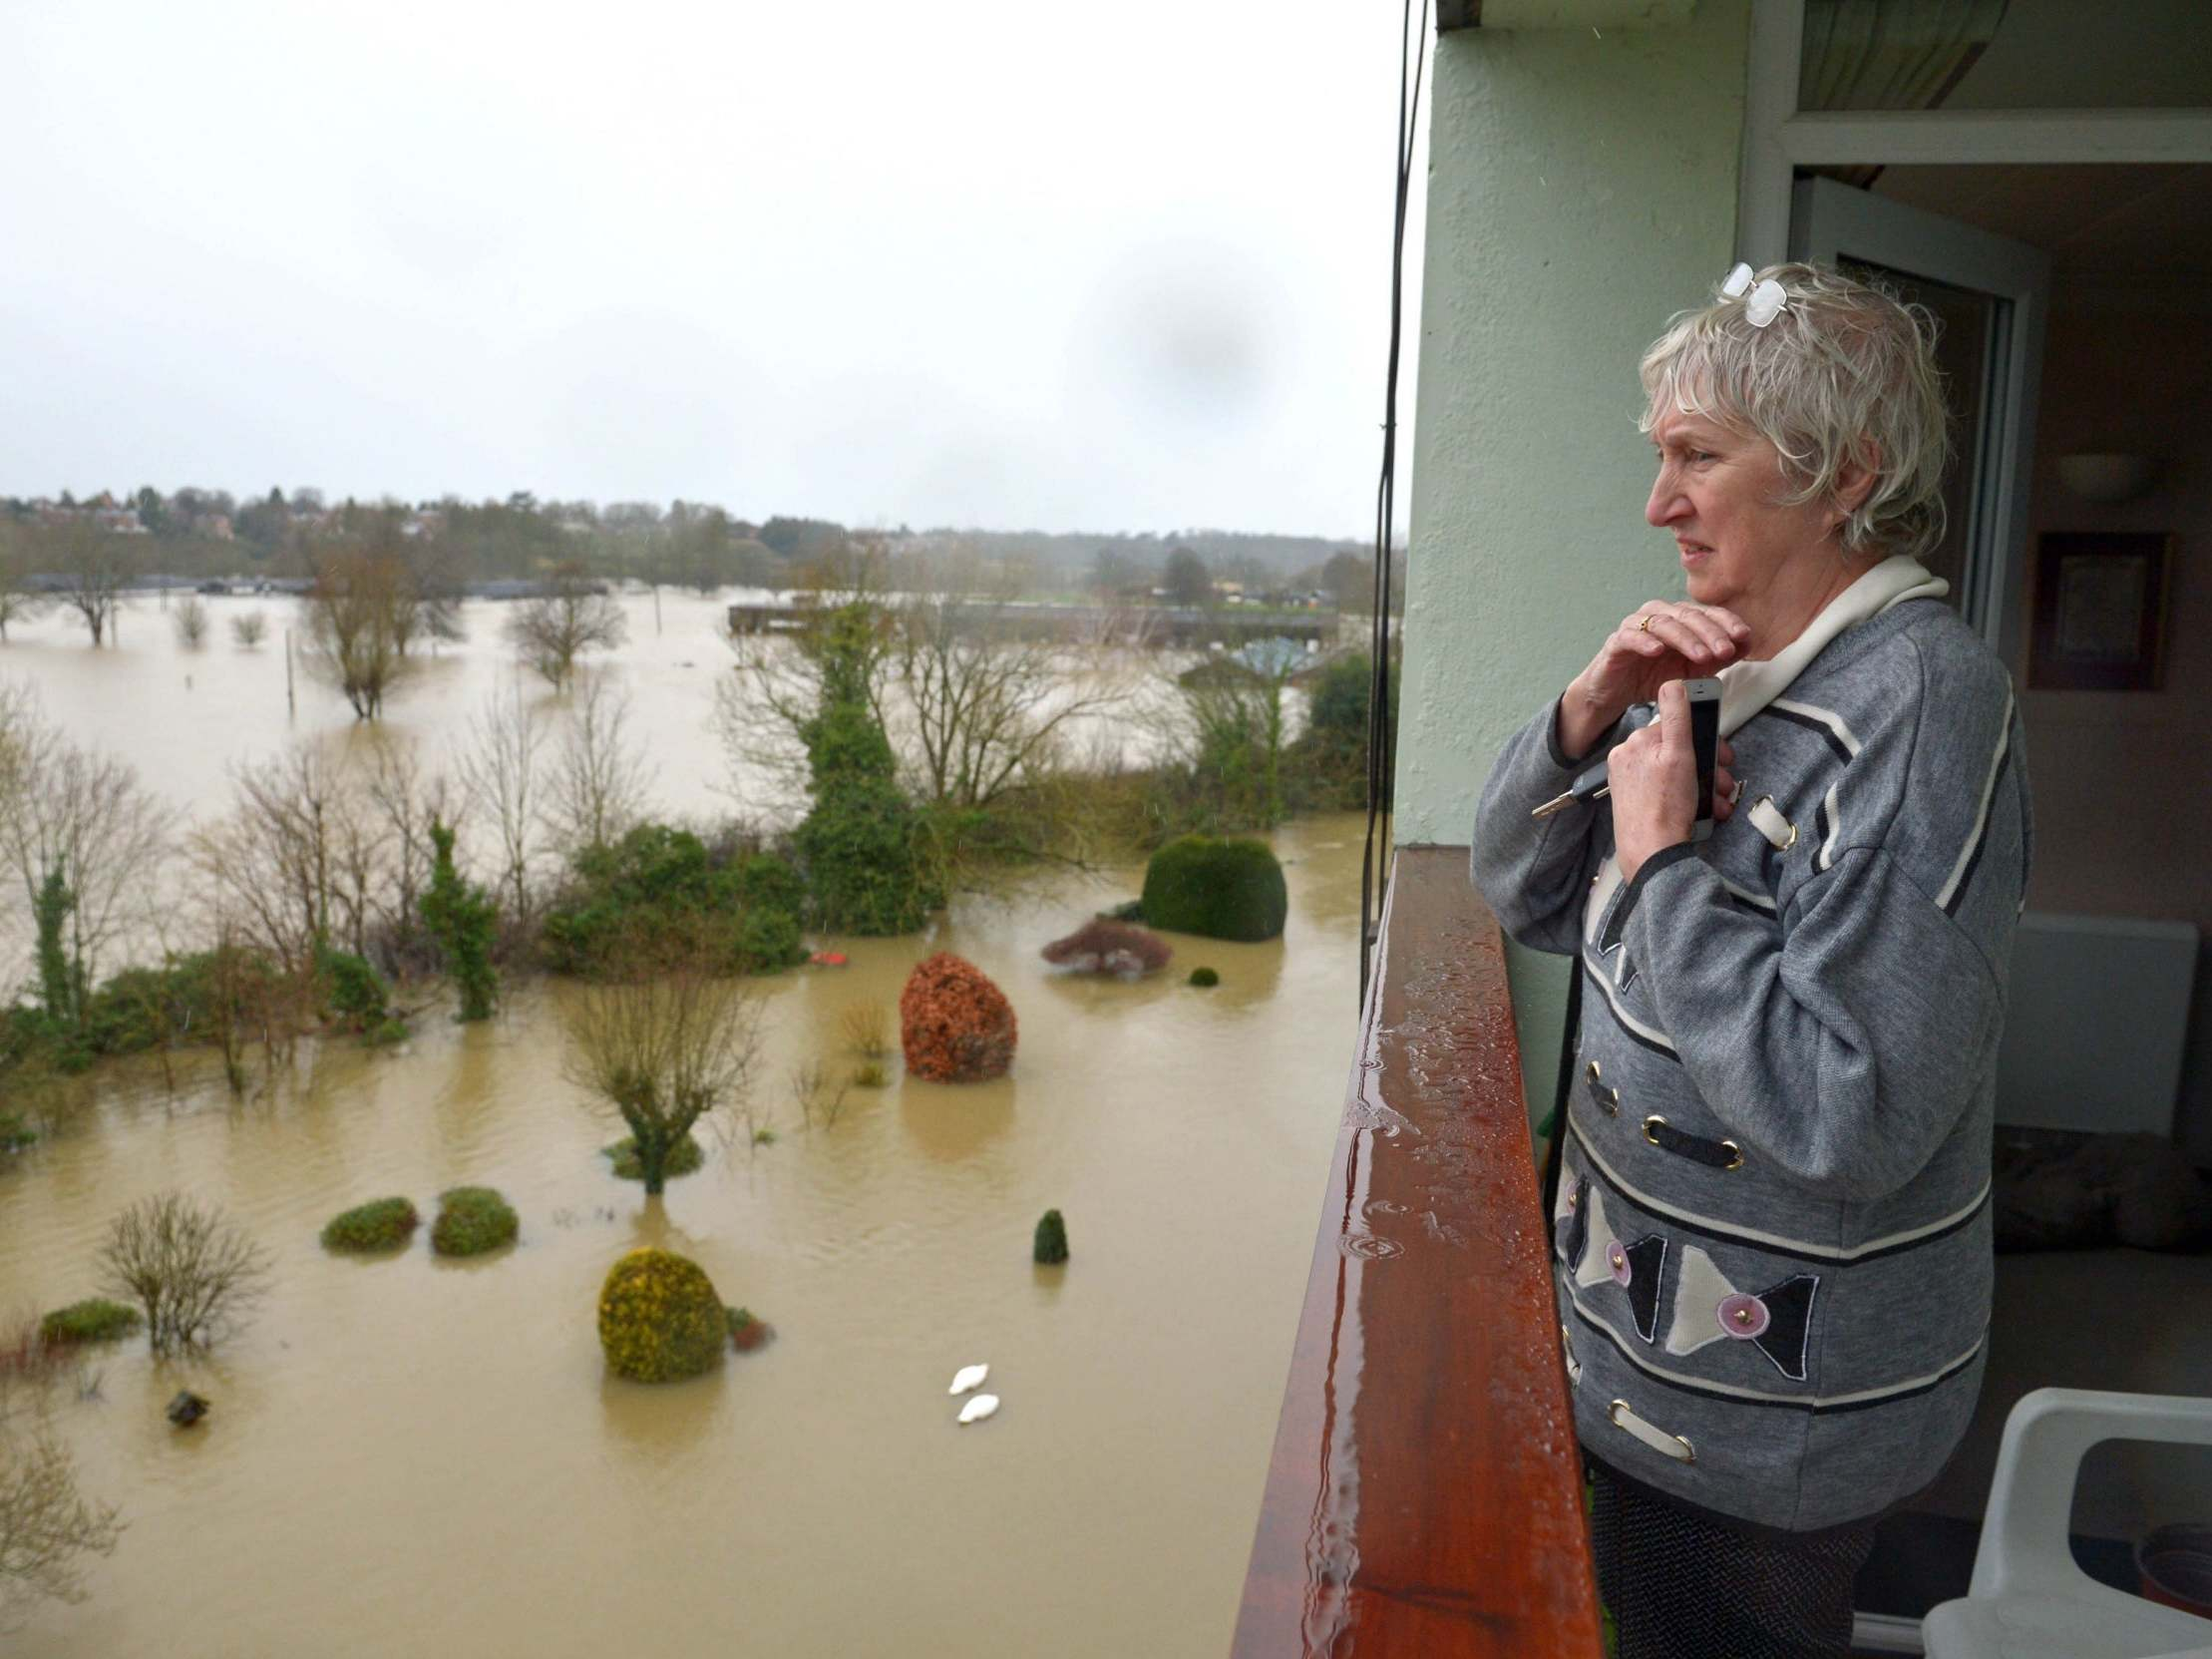 'Lives at risk' as River Severn set to rise to highest level in 20 years